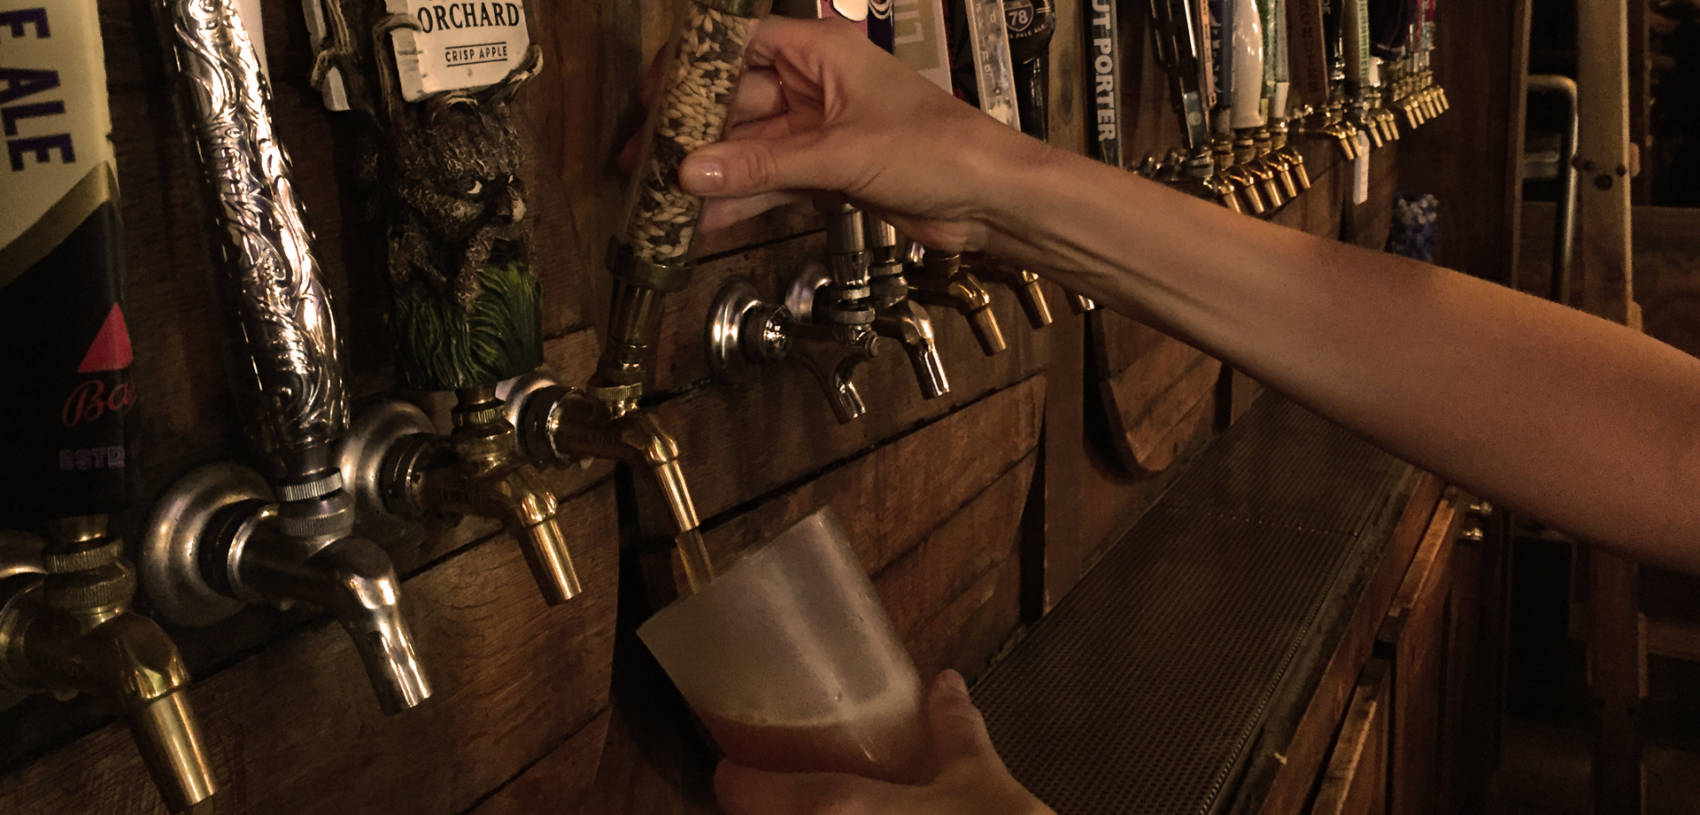 Kailua pub with 30 craft beers on tap